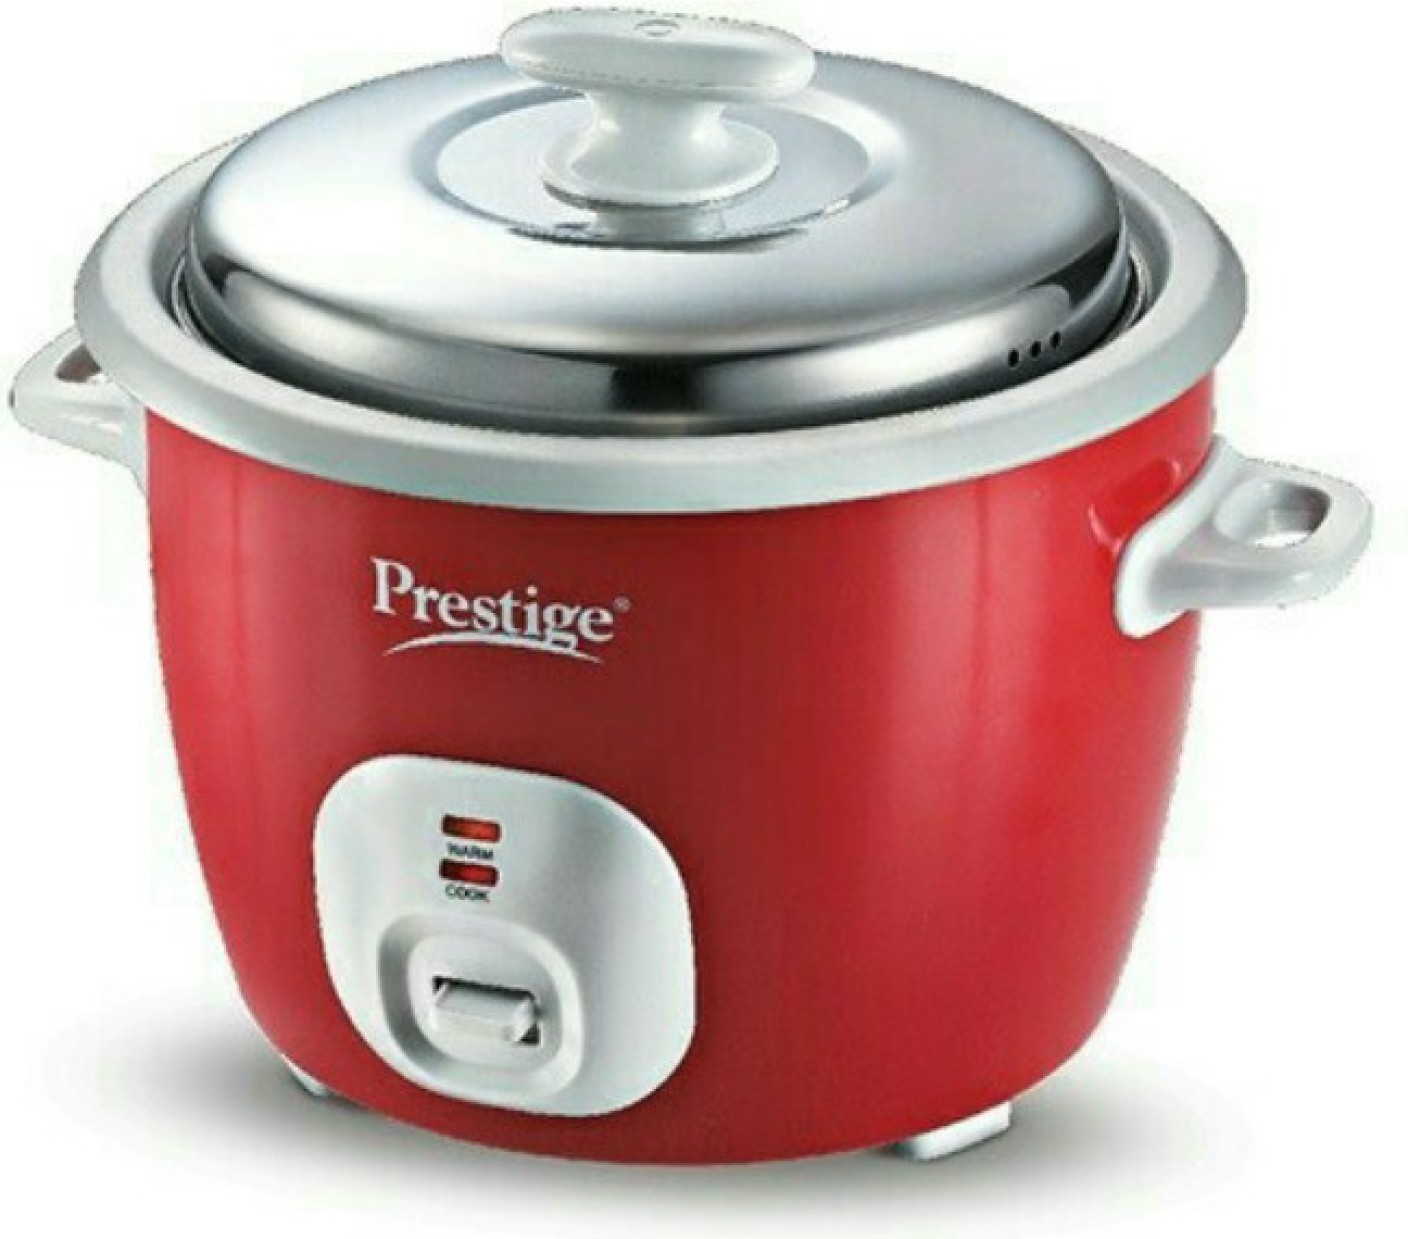 Prestige CUTE 1.8-2 Electric Rice Cooker with Steaming Feature ...